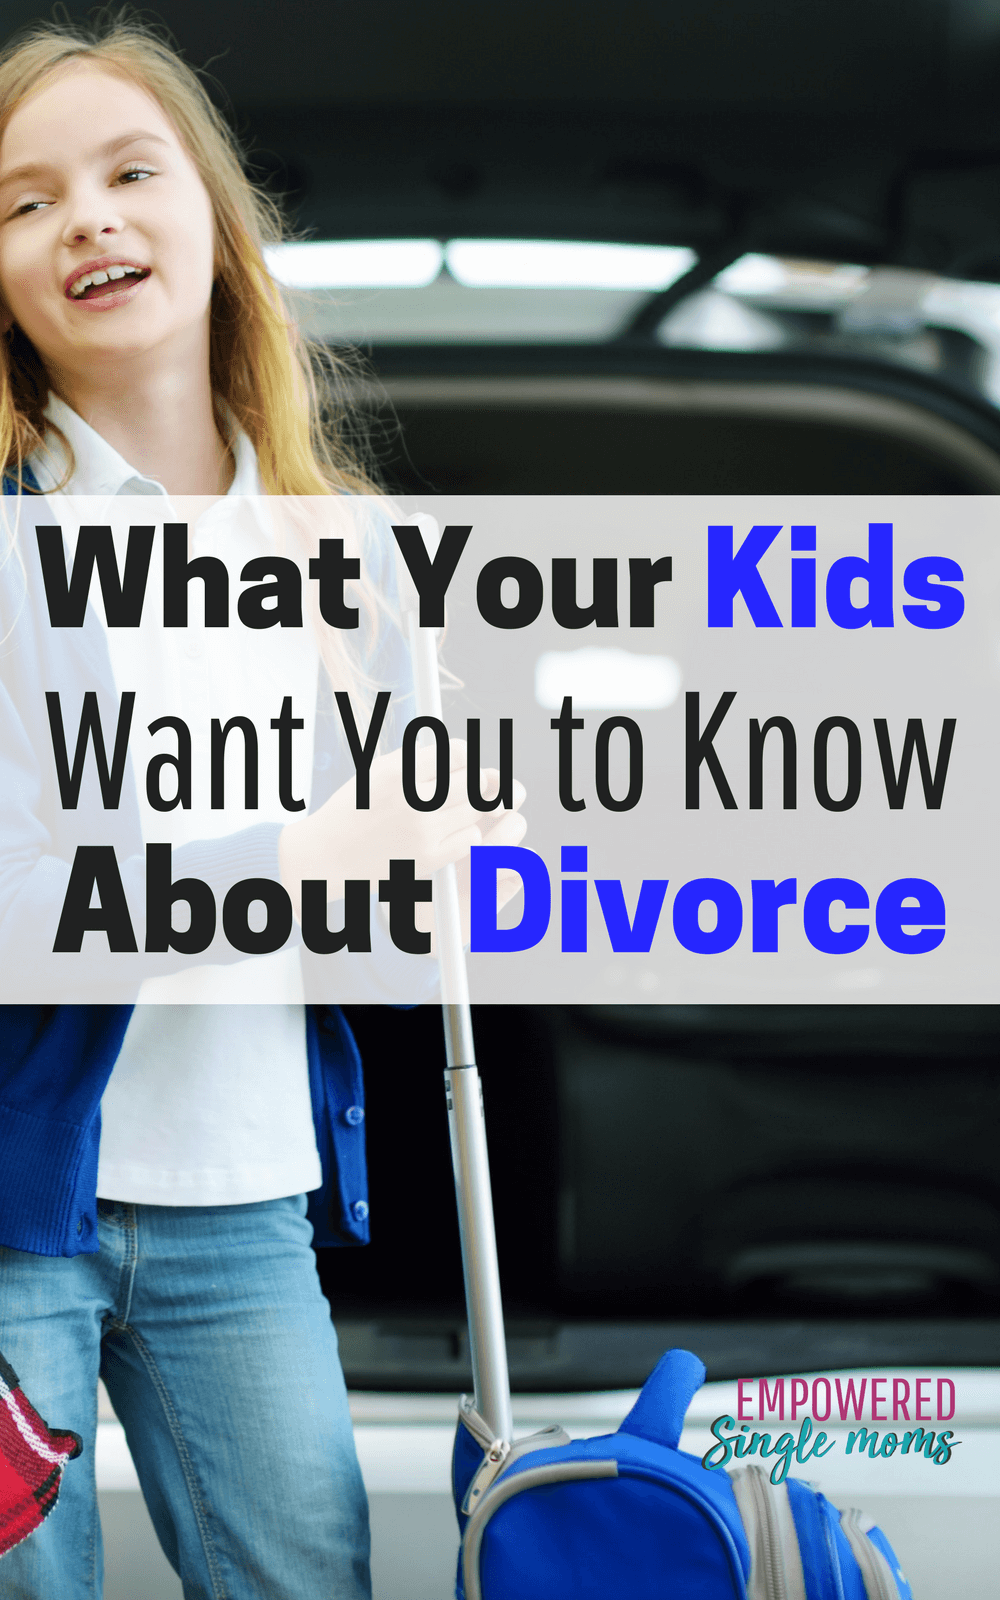 Kids growing up with divorced parents have a lot of strong thoughts and feelings. Single moms often wish they knew what they could do to help kids. Kids wish parents would help make living in two homes easier. These tips are what they want you to know. #divorce #tips #singlemoms #kids